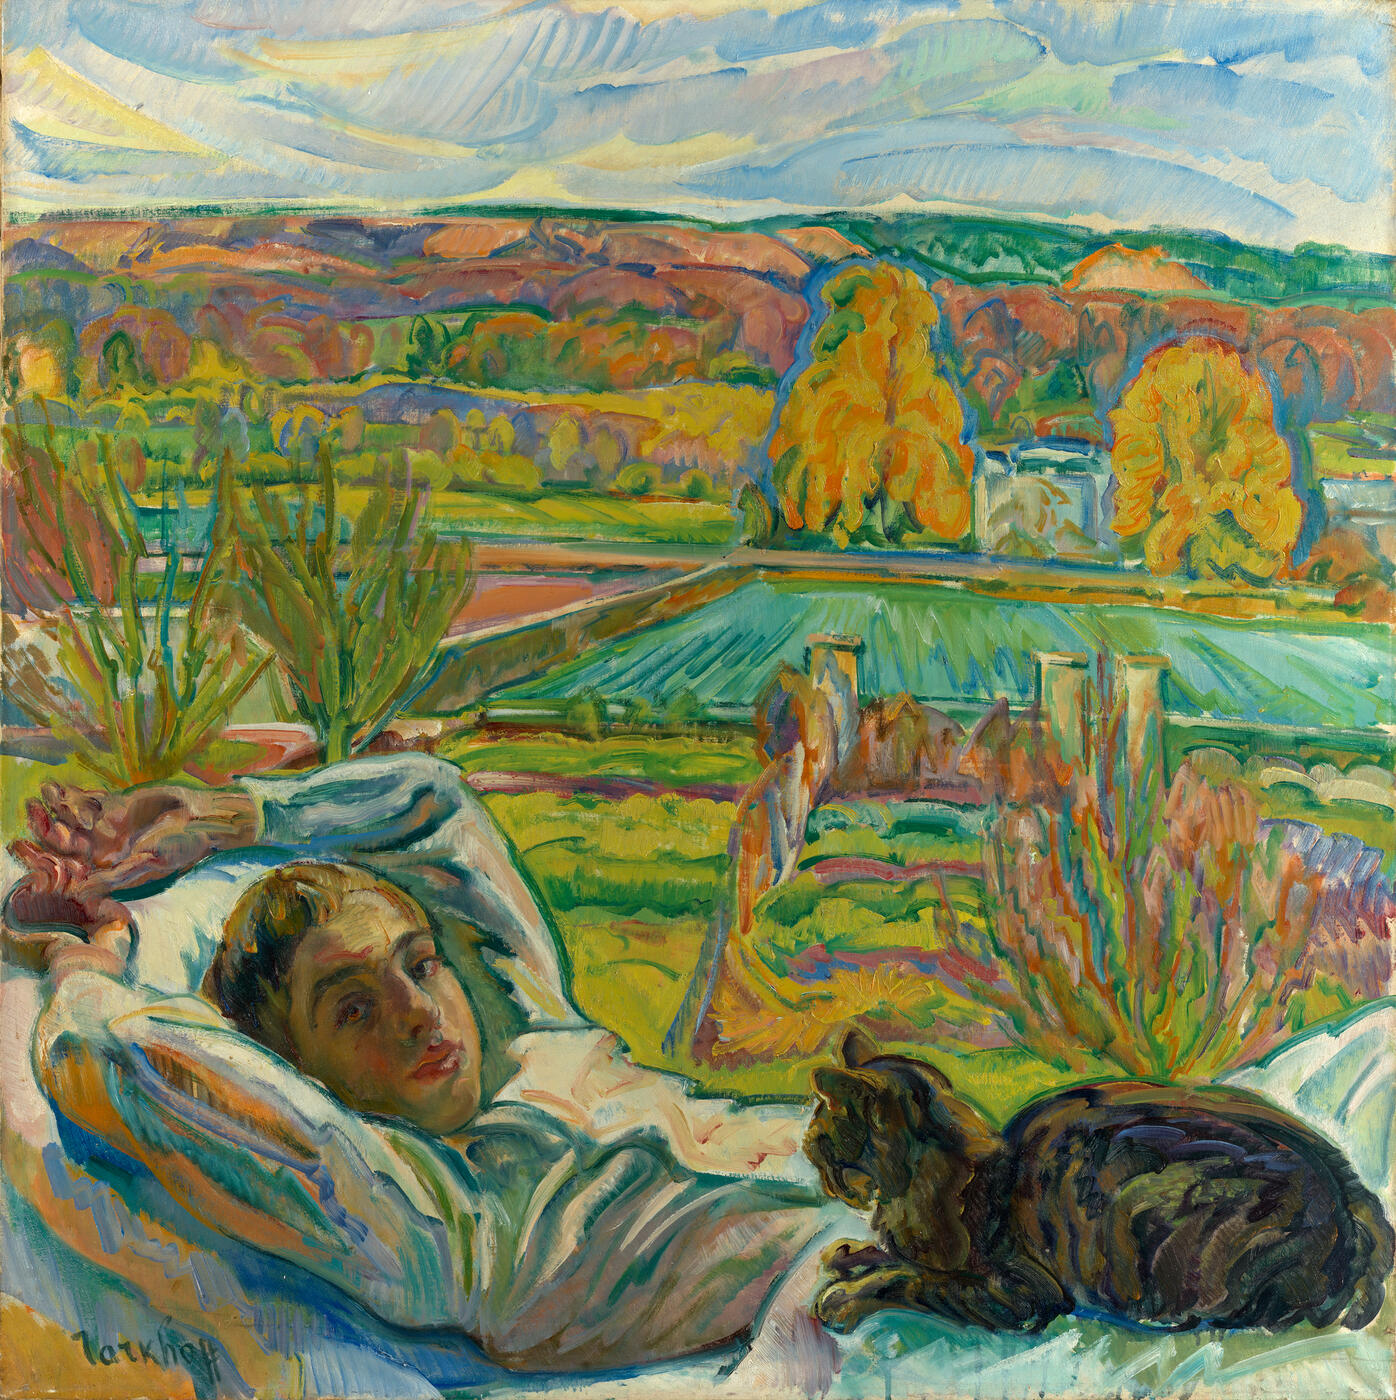 Portrait of the Artist's Son Jean in Jardin d'Orsay